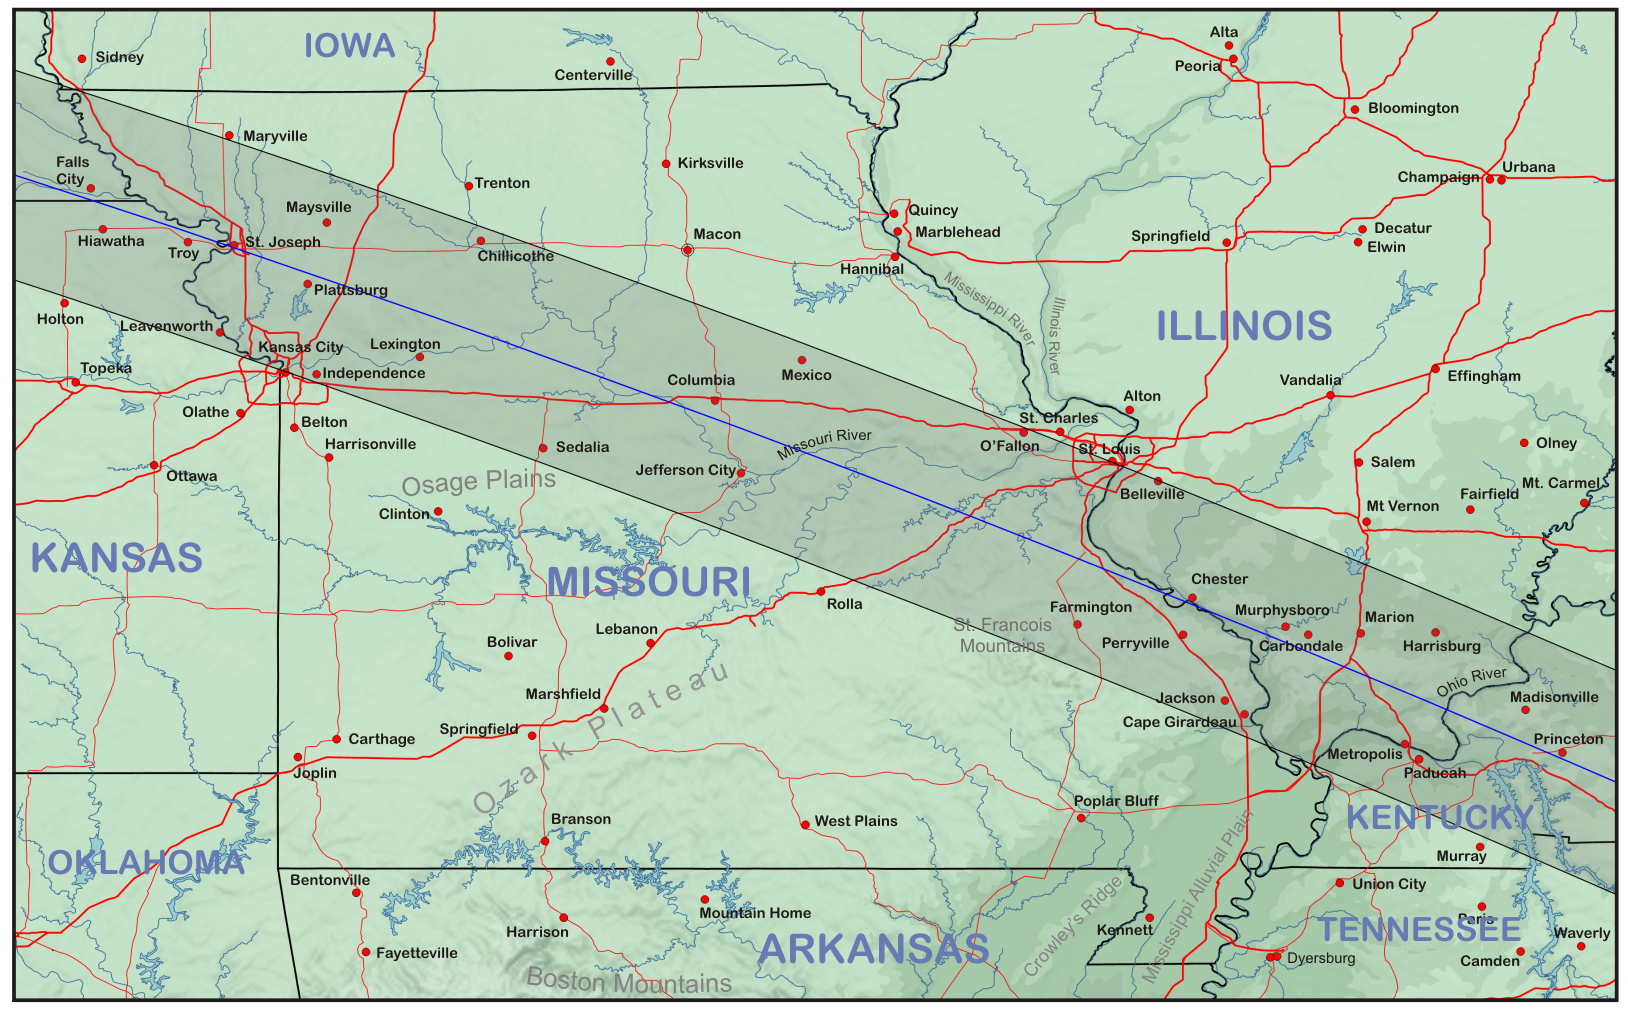 Missouri and Illinois  Eclipsophile